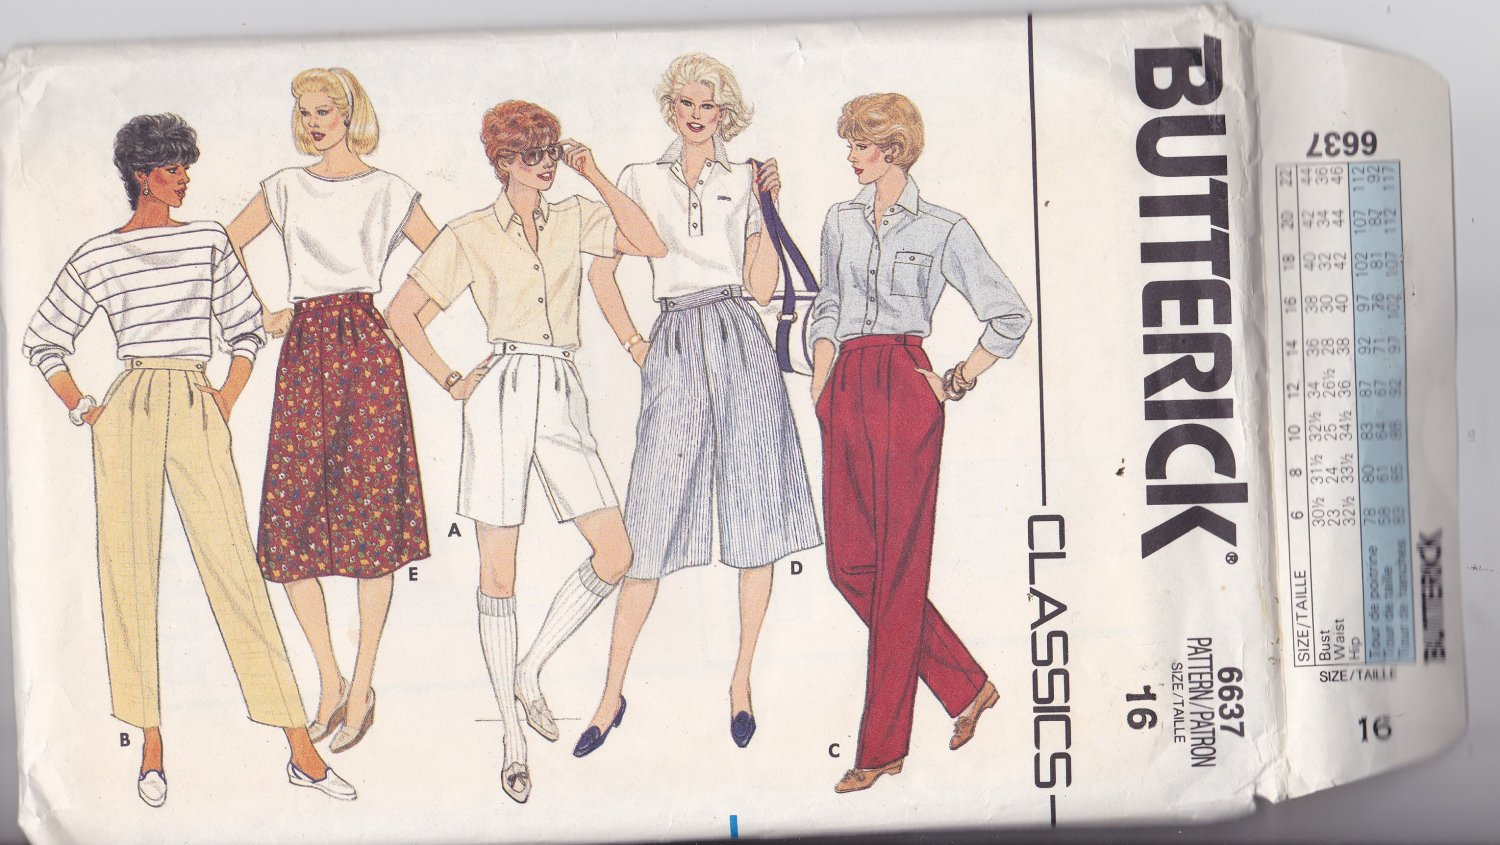 Butterick 6637 size 16, may be missing pieces, 50 cents plus shipping